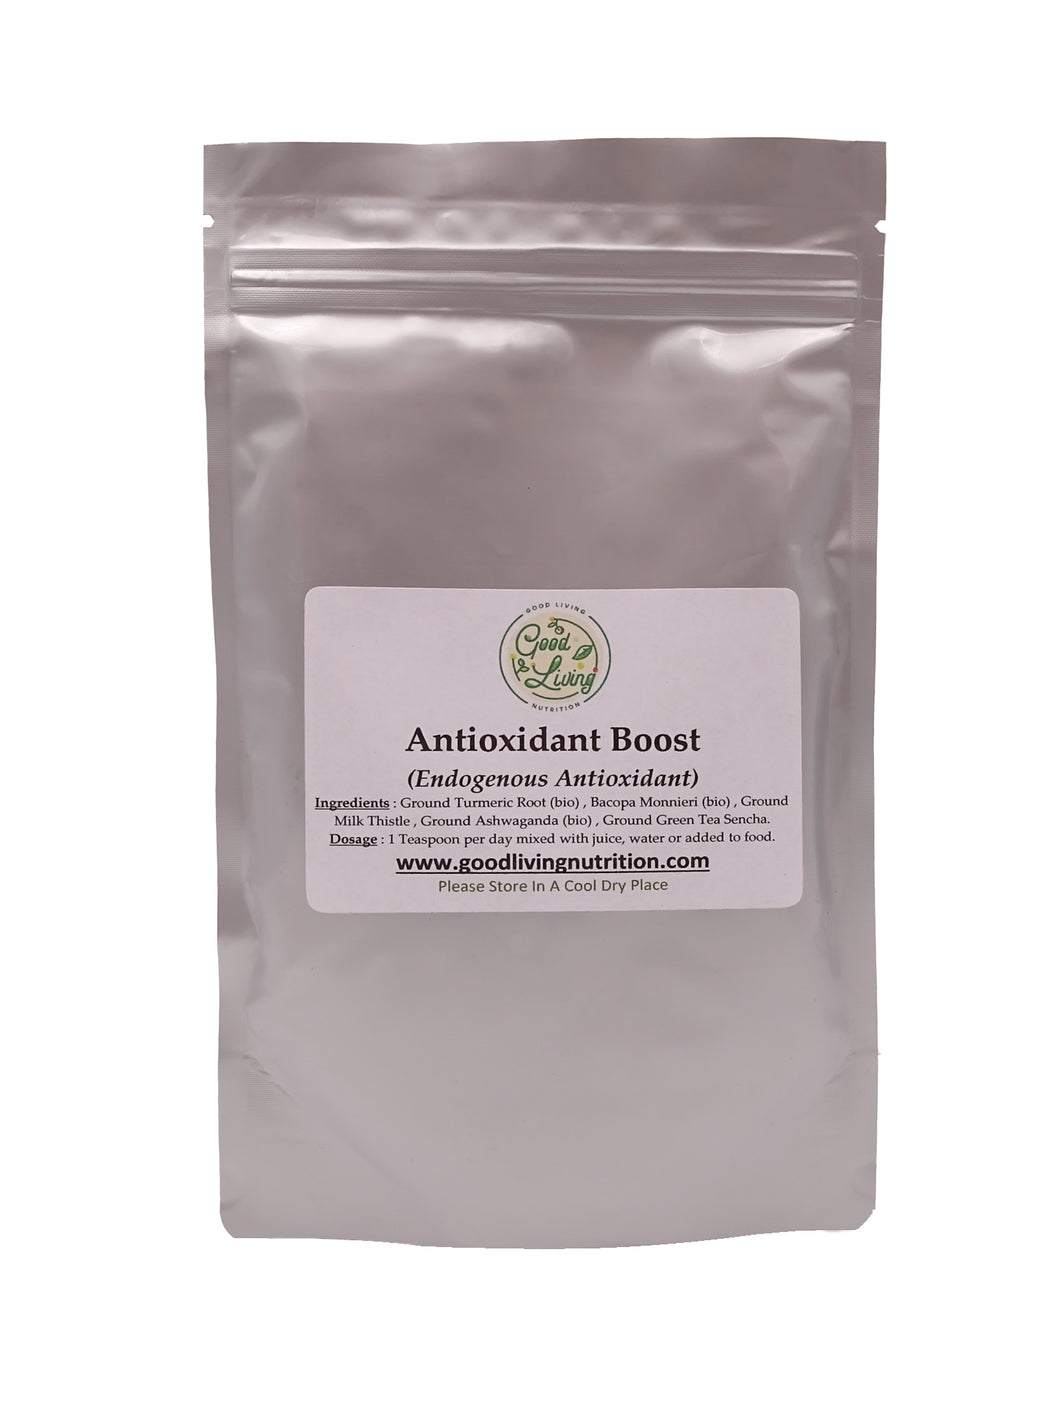 Antioxidant Boost (Endogenous Antioxidant)